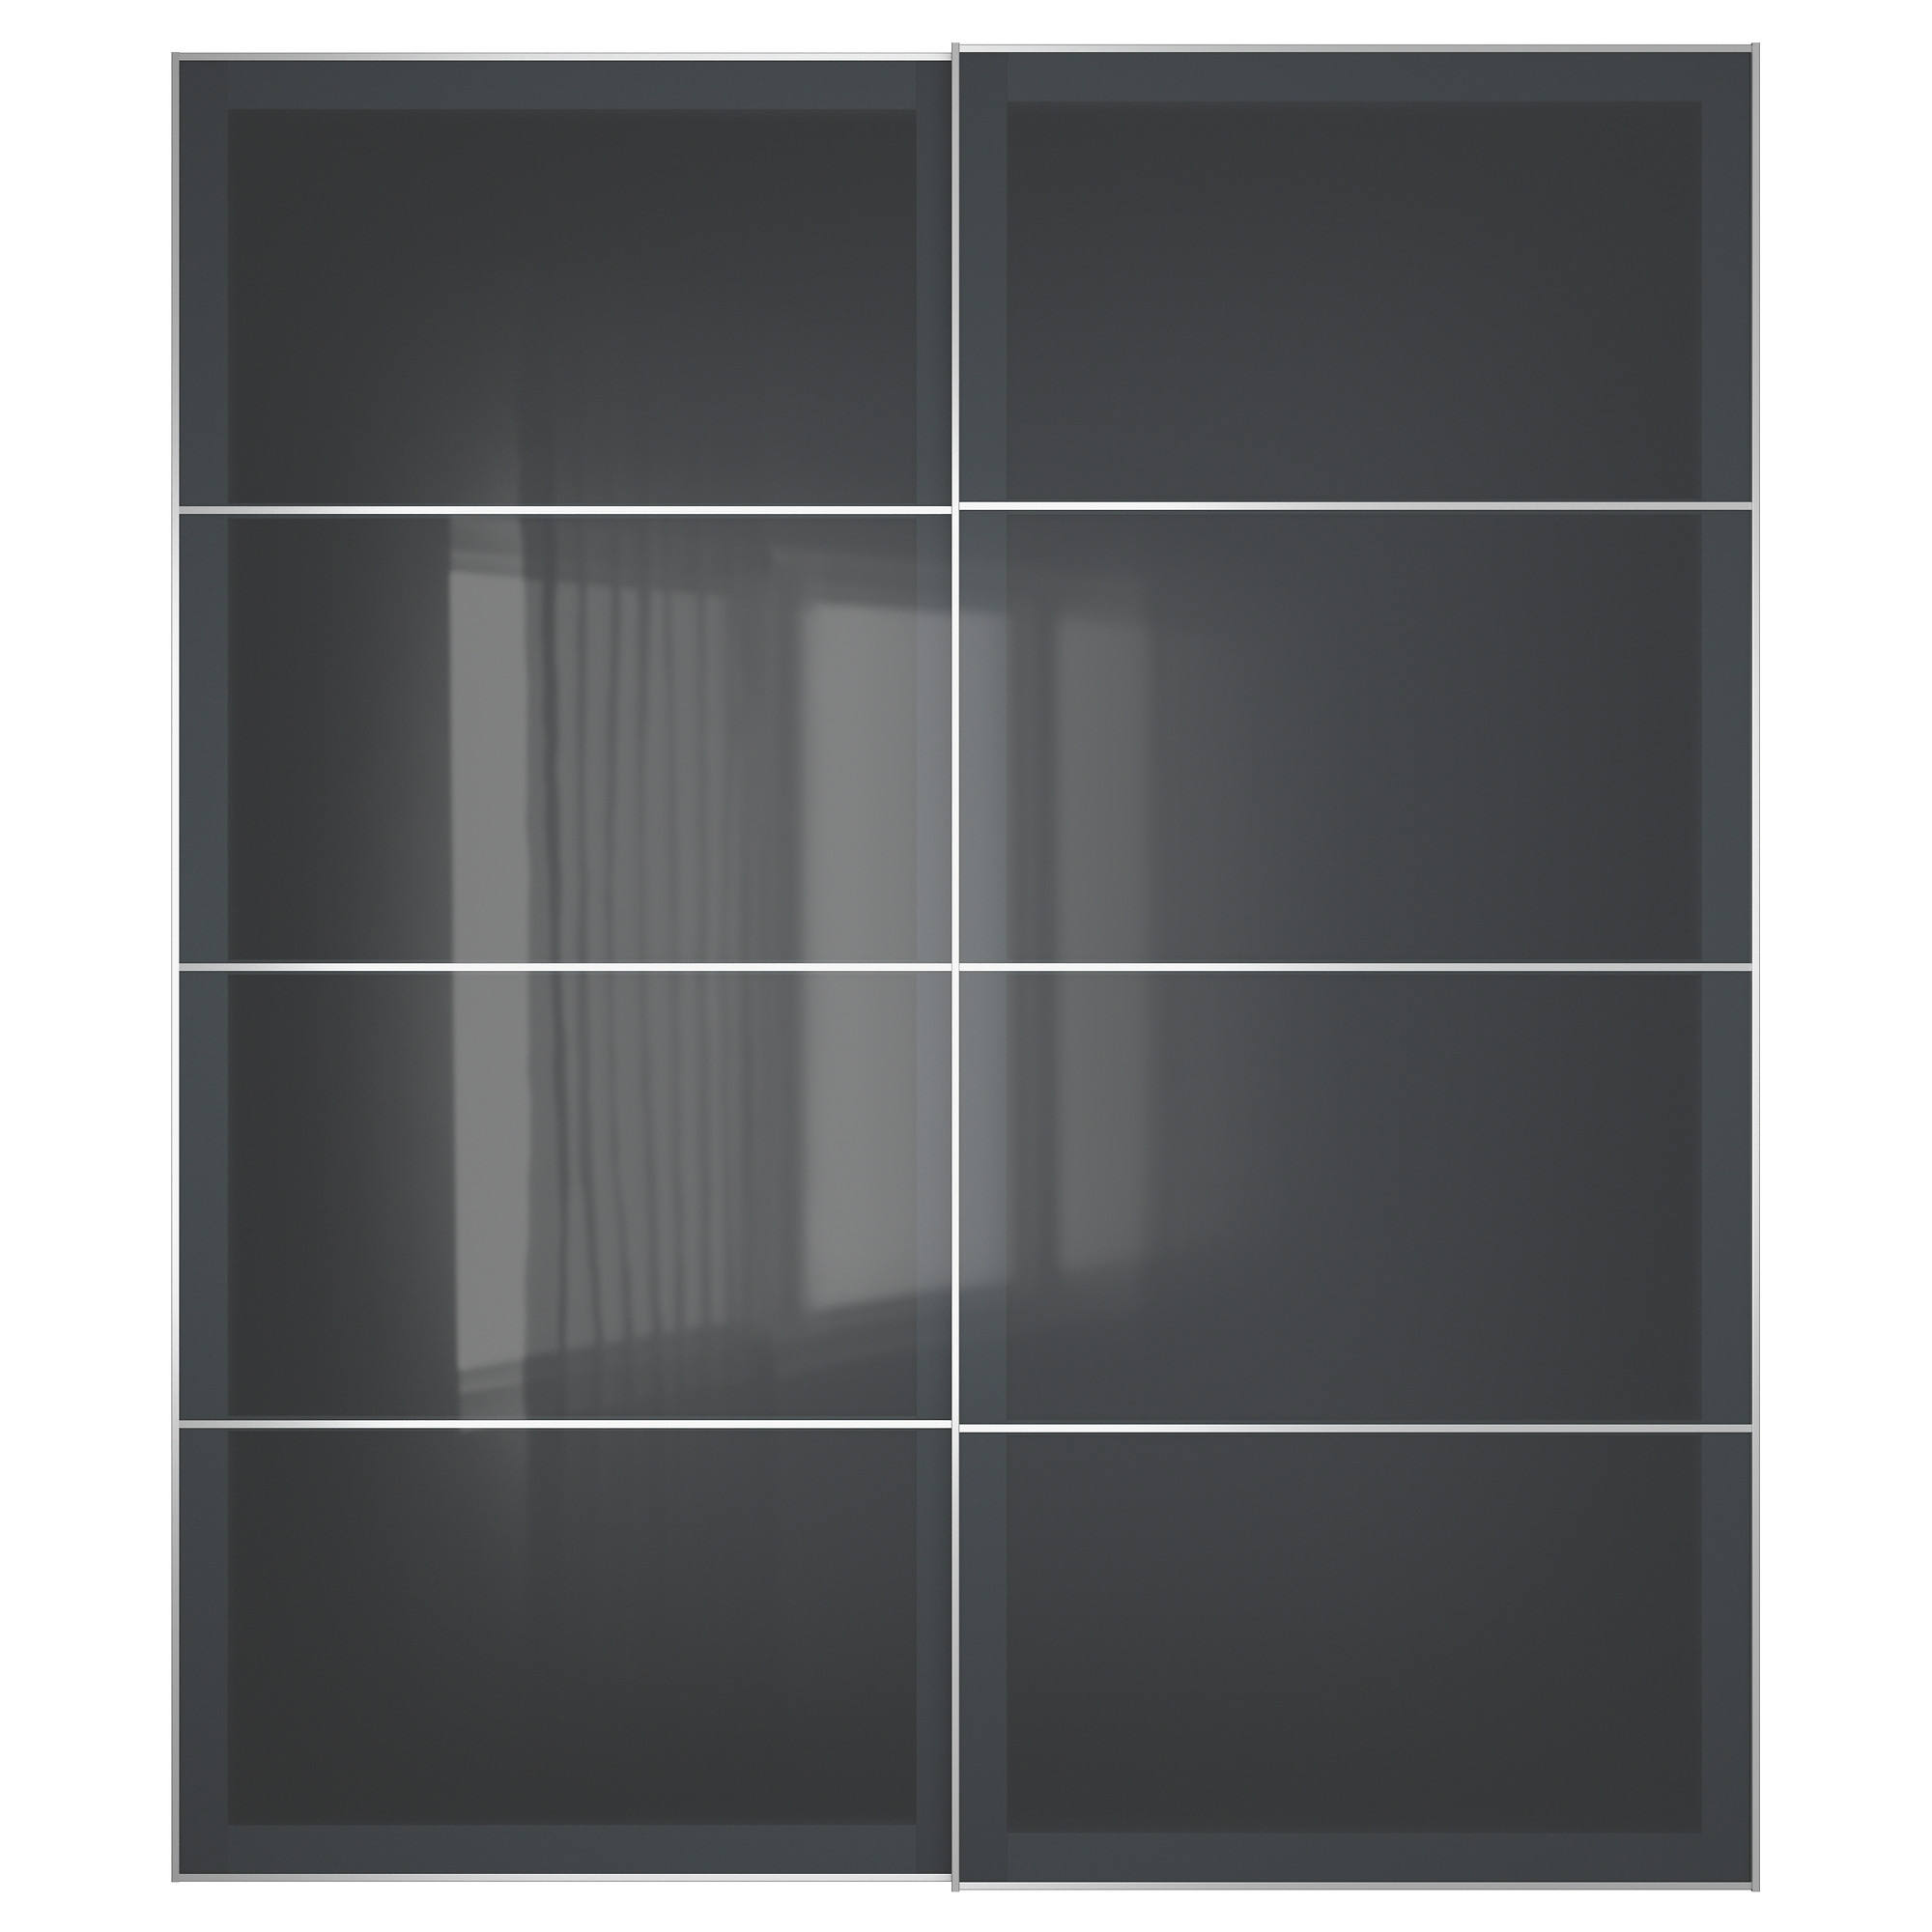 "Black Sliding Wardrobes Intended For Most Up To Date Uggdal Pair Of Sliding Doors – 59x92 7/8 "", – – Ikea (View 12 of 15)"